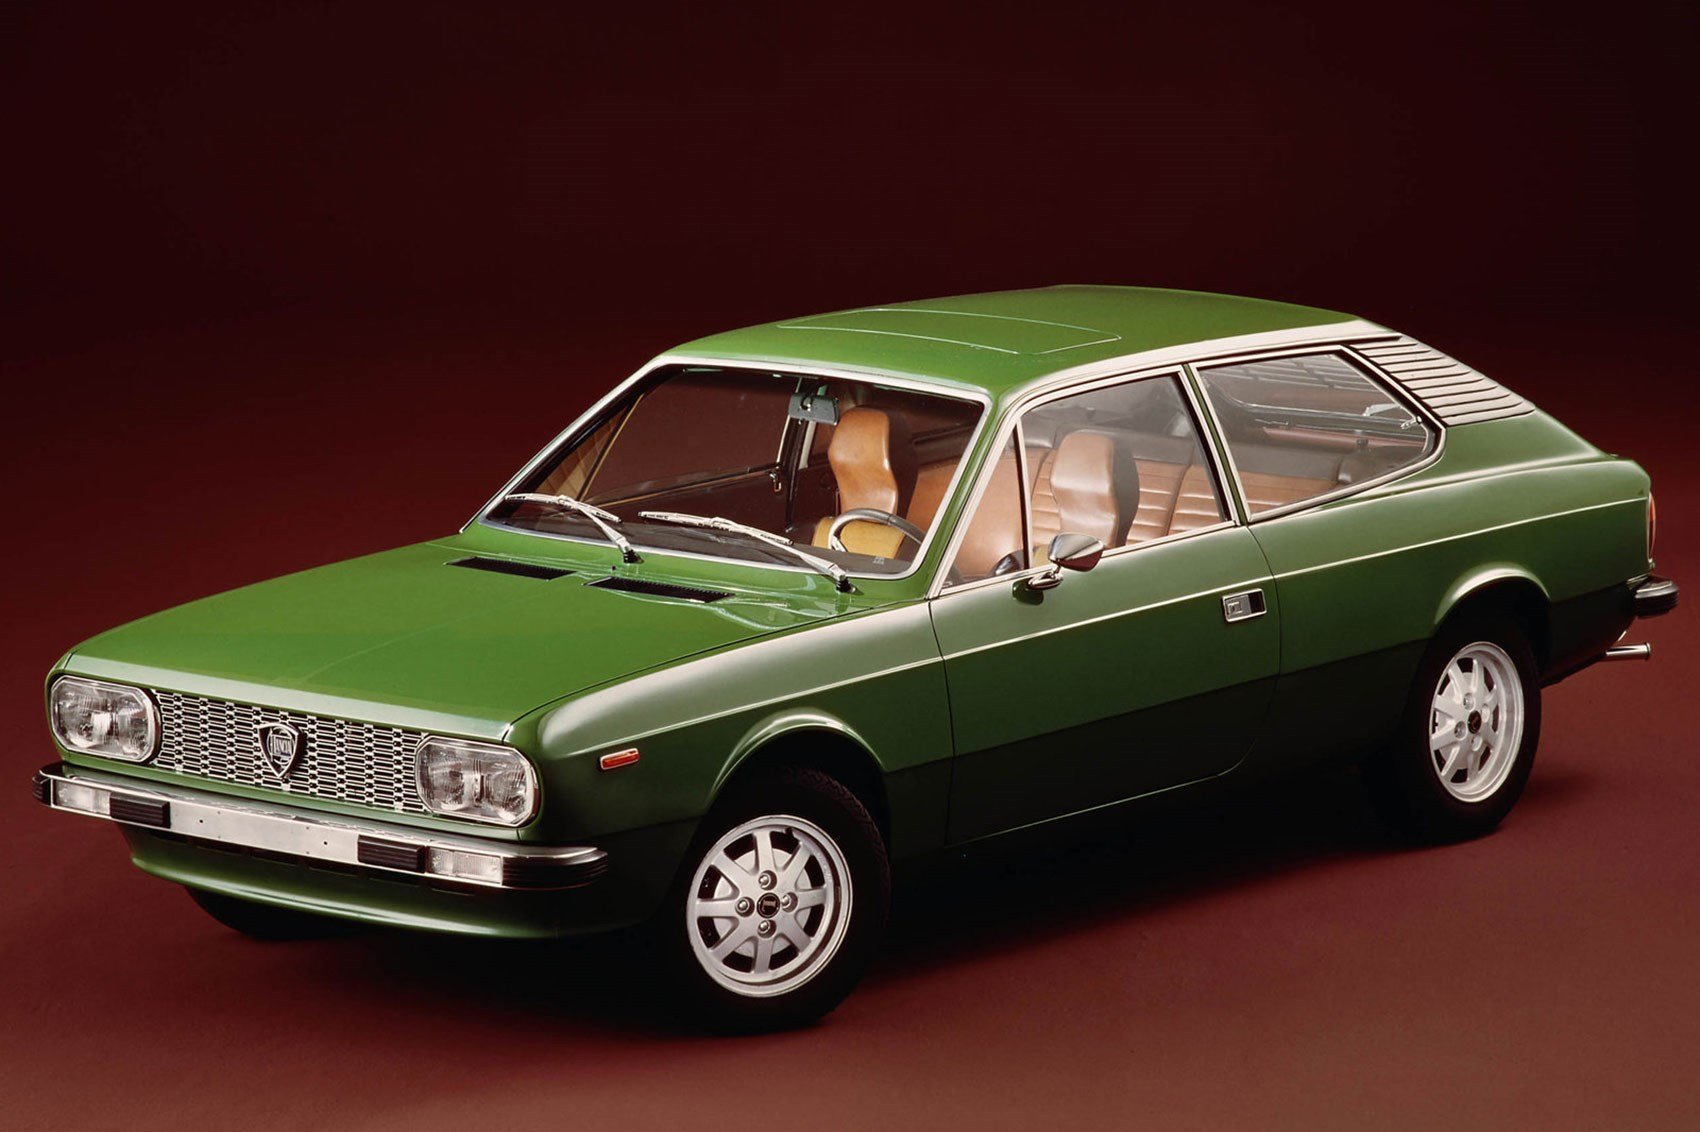 New The Car Top 10 Lancias That Aren't The Stratos Or D*Mn On This Month